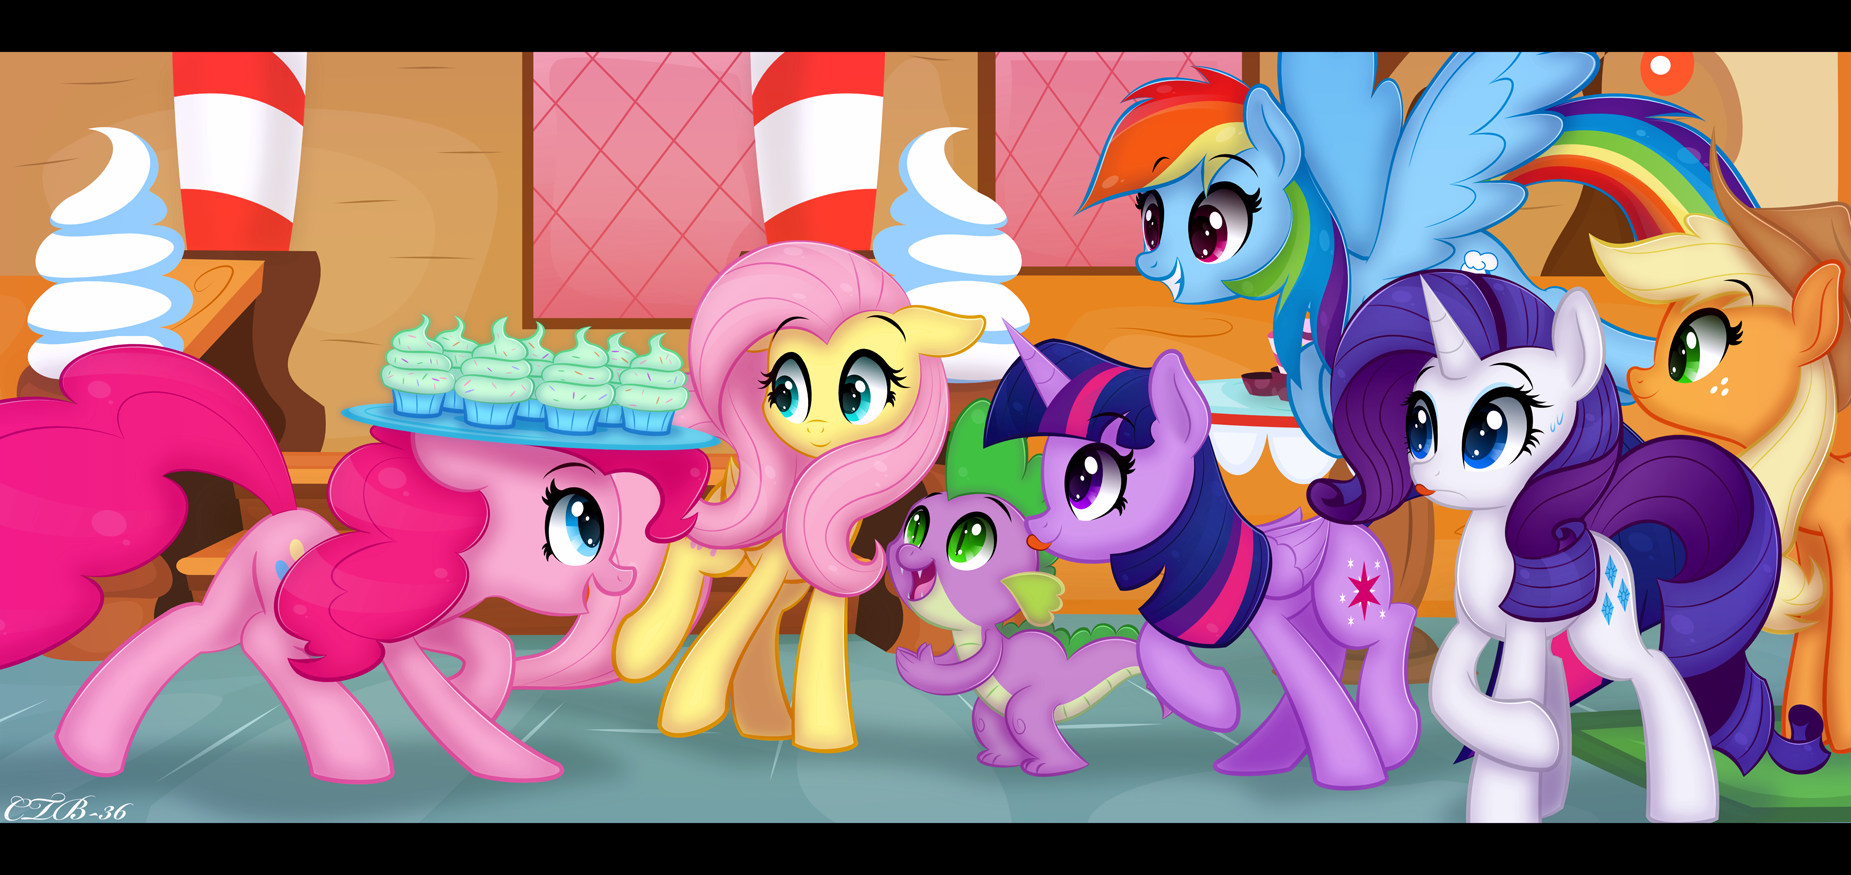 Anypony want a cupcake?